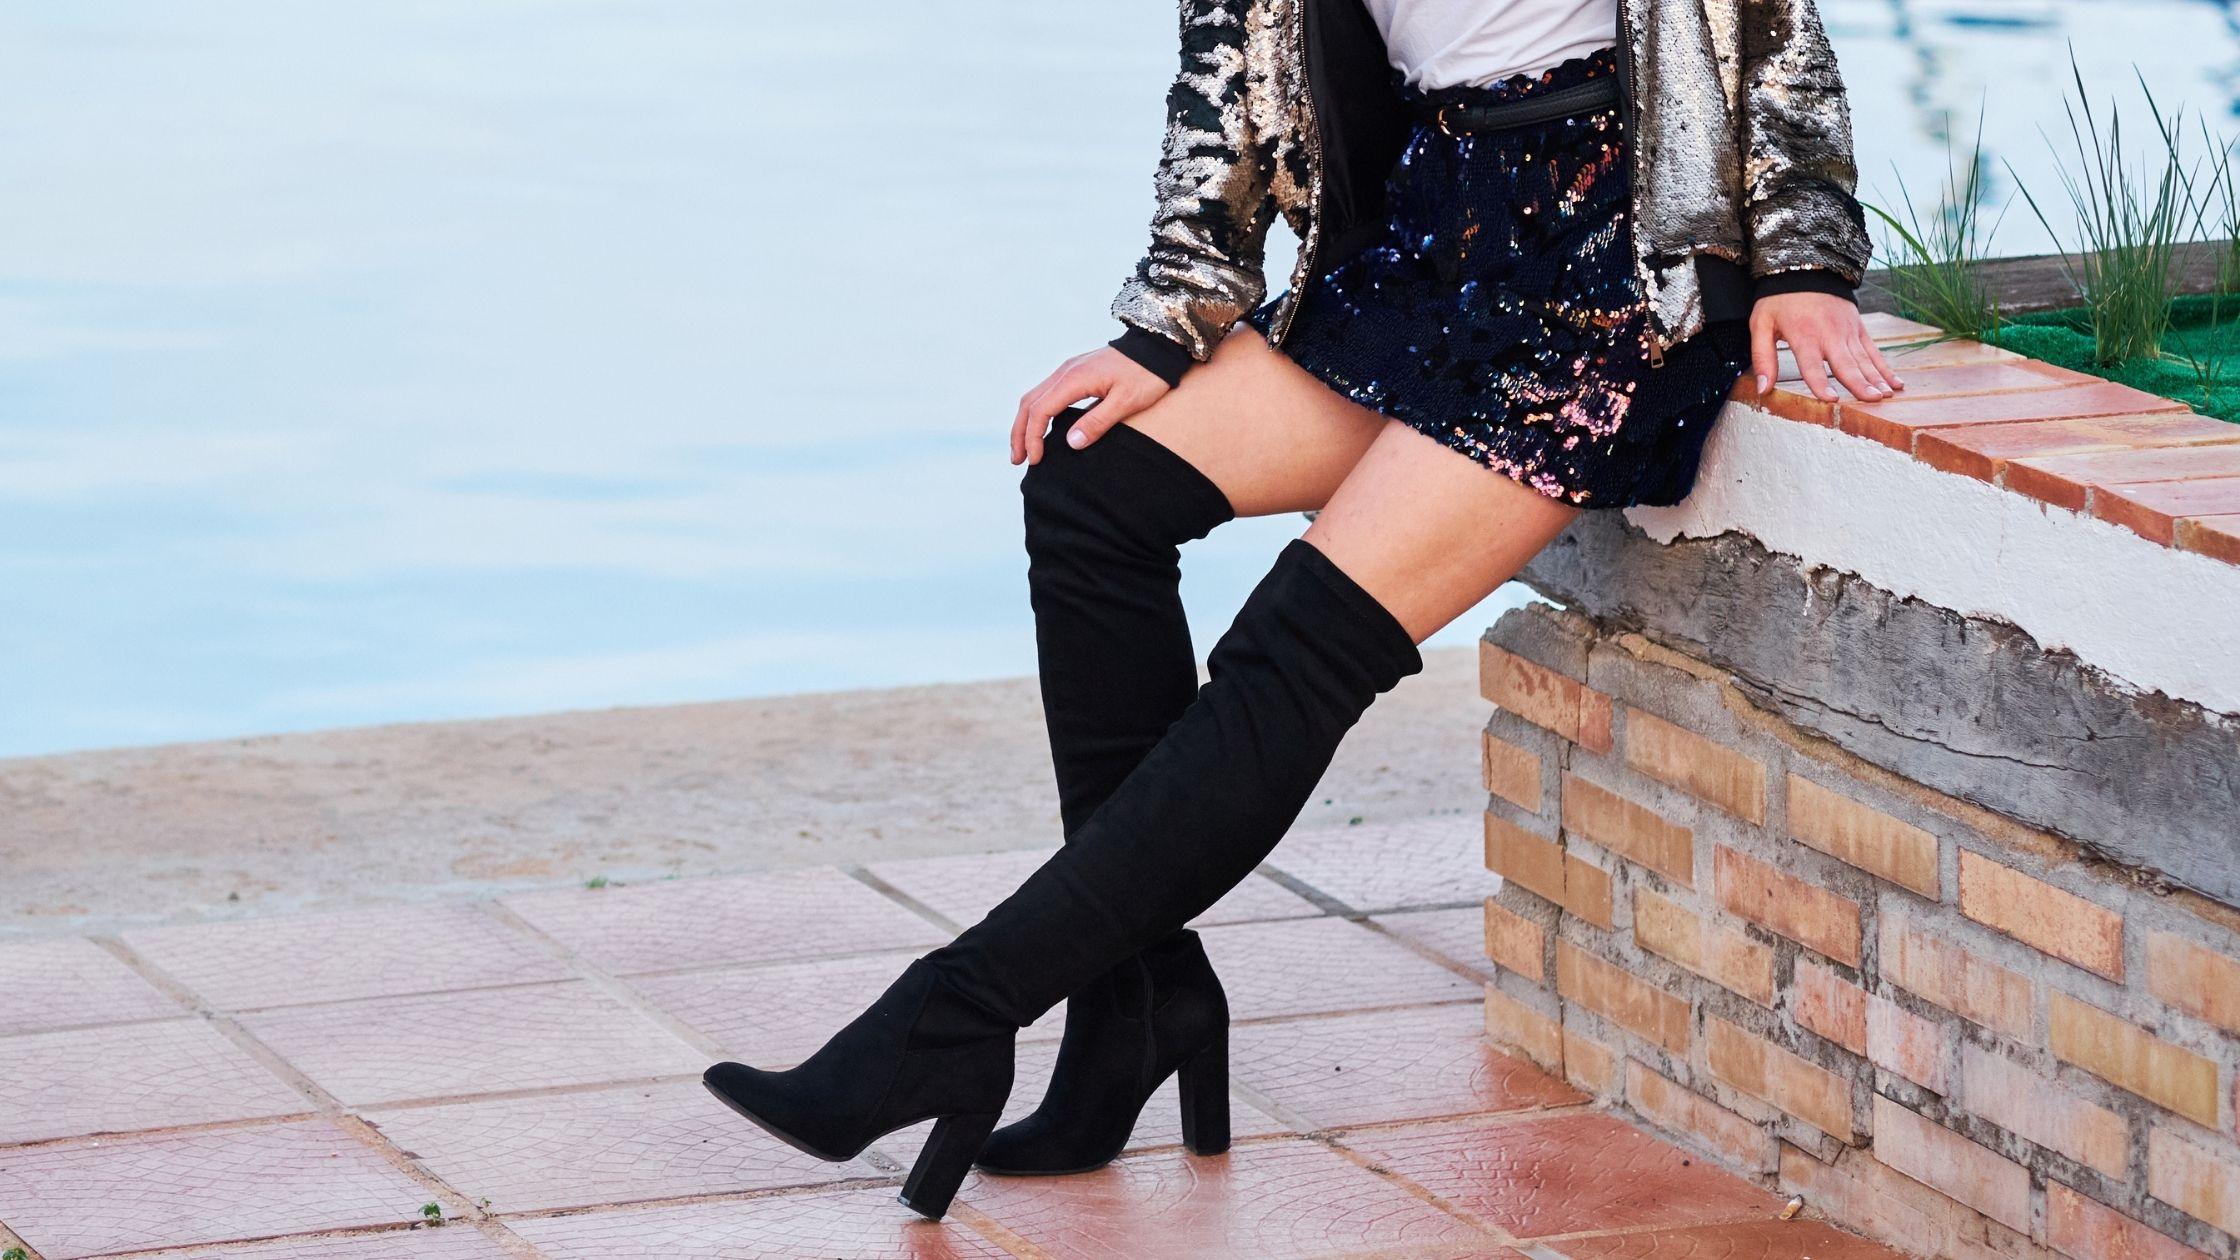 How to Keep Knee High Boots Up